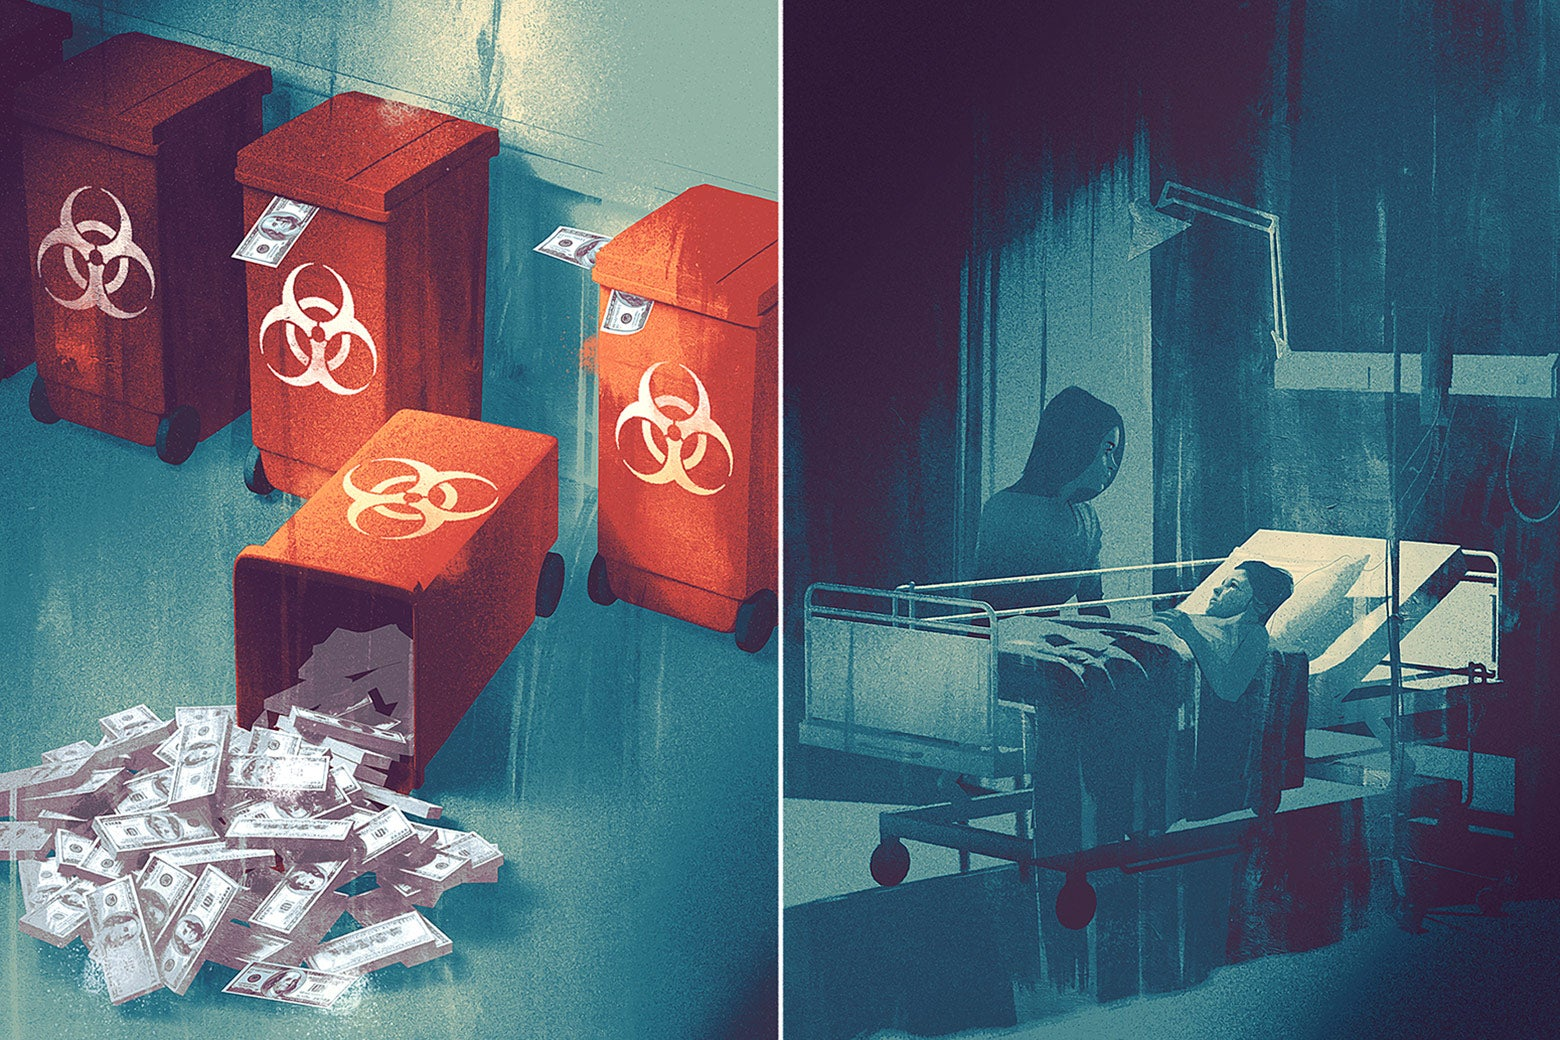 Diptych of a hazardous waste can with money falling out of it and a child on a hospital bed.